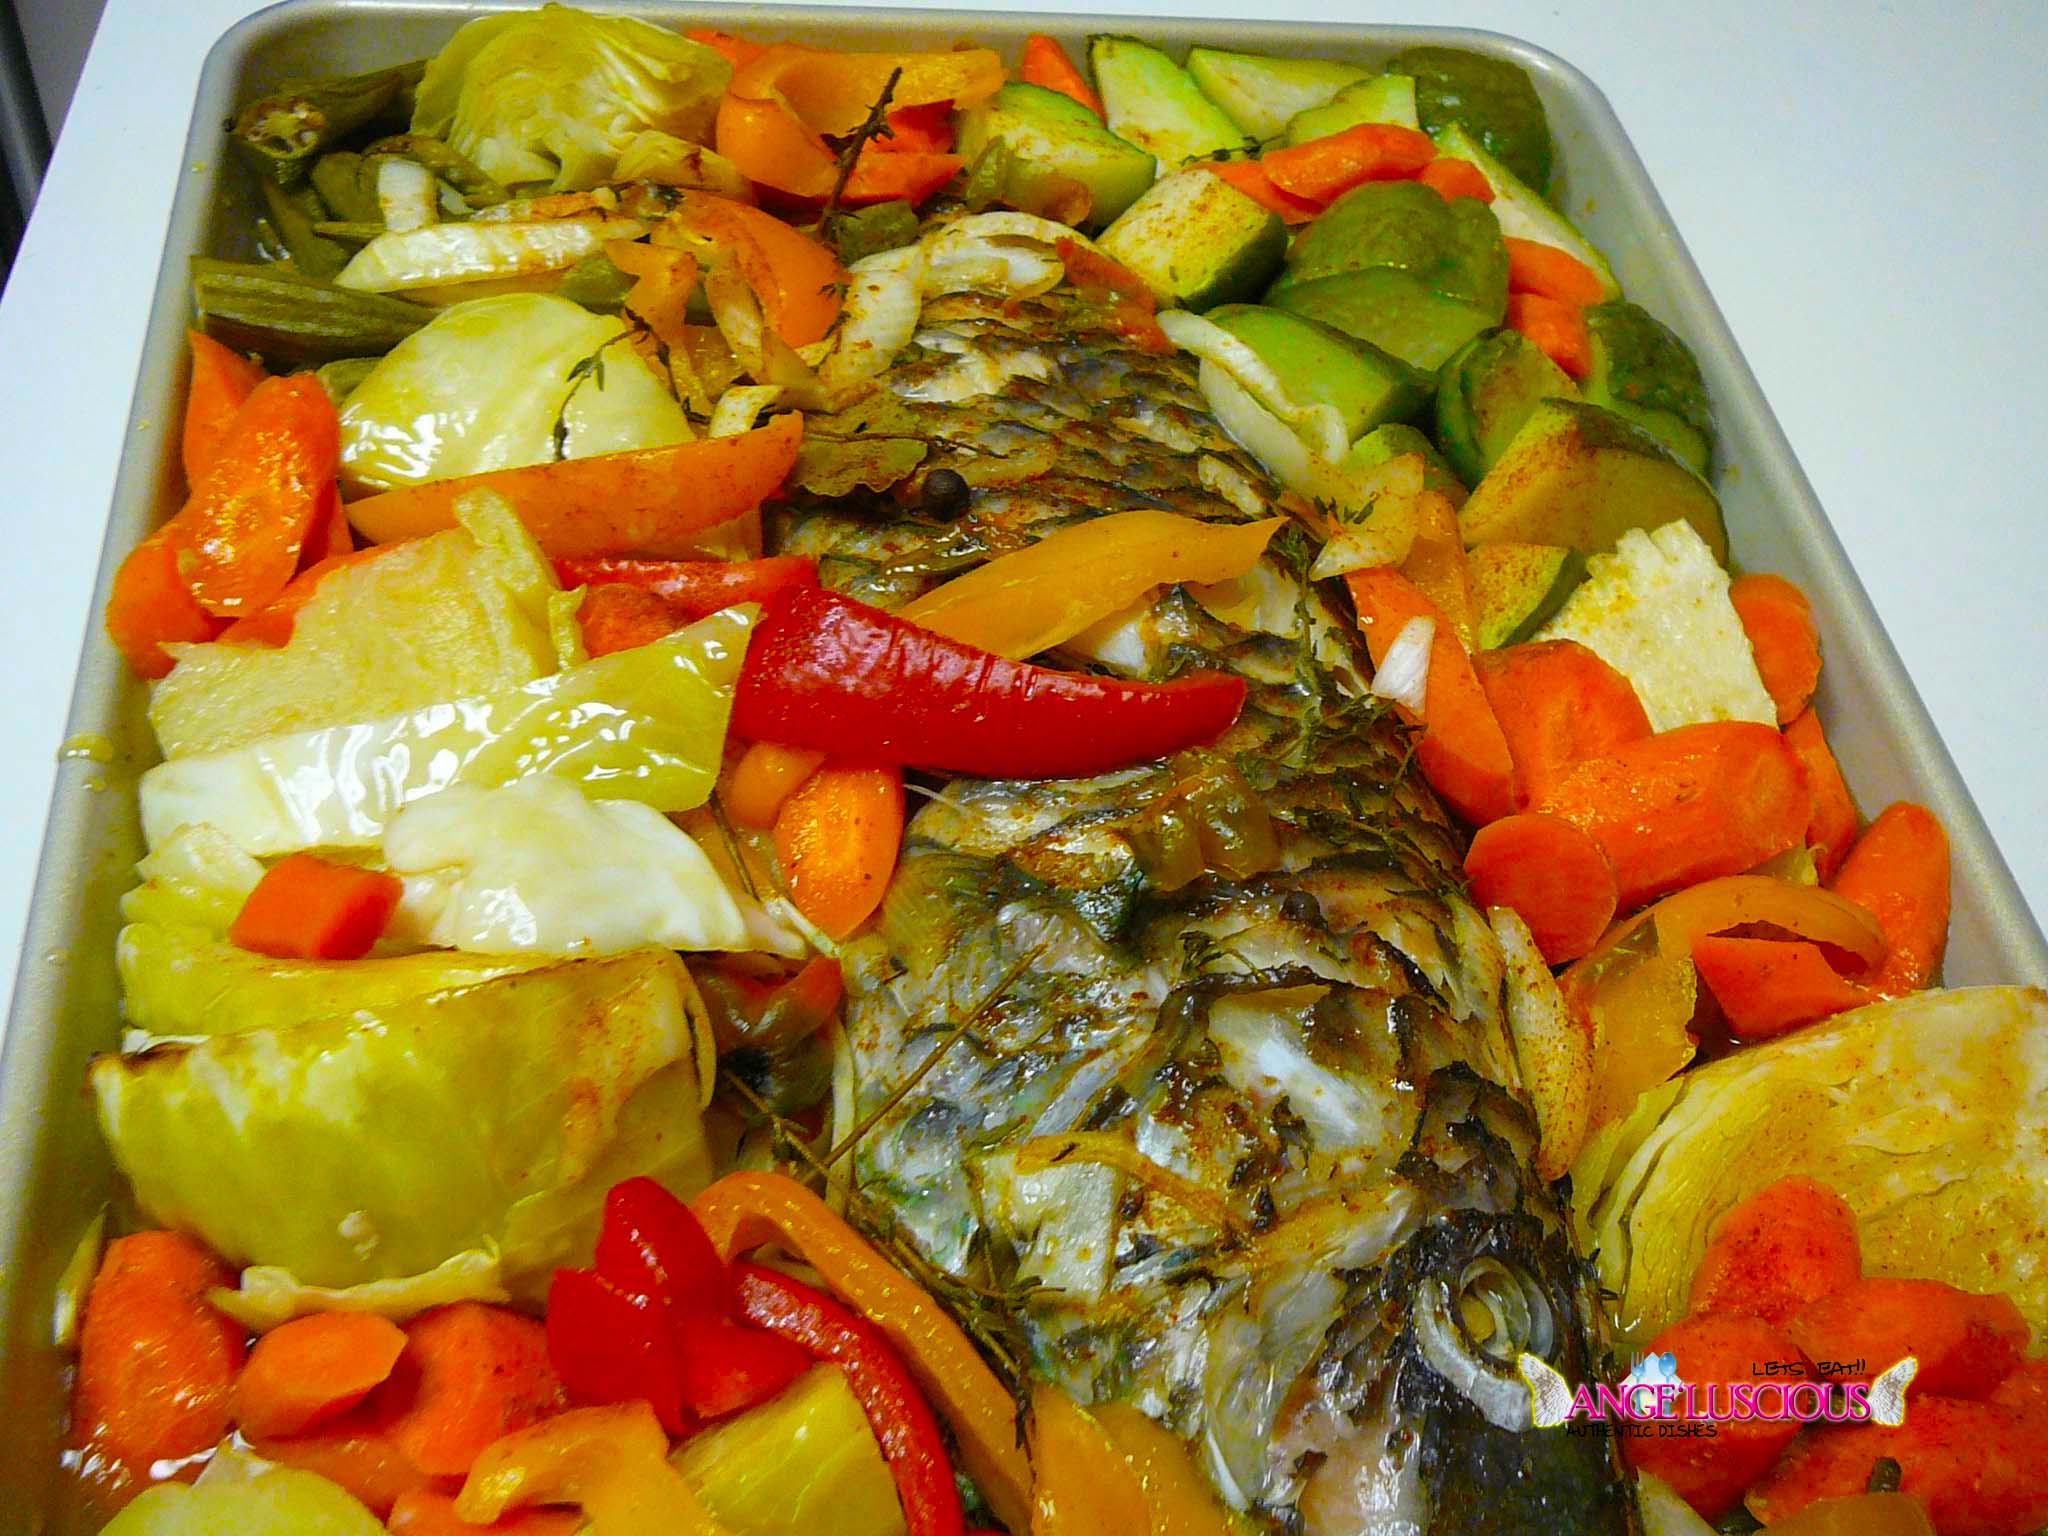 Oven roasted parrot fish and vegetables angeluscious for What vegetables go with fish